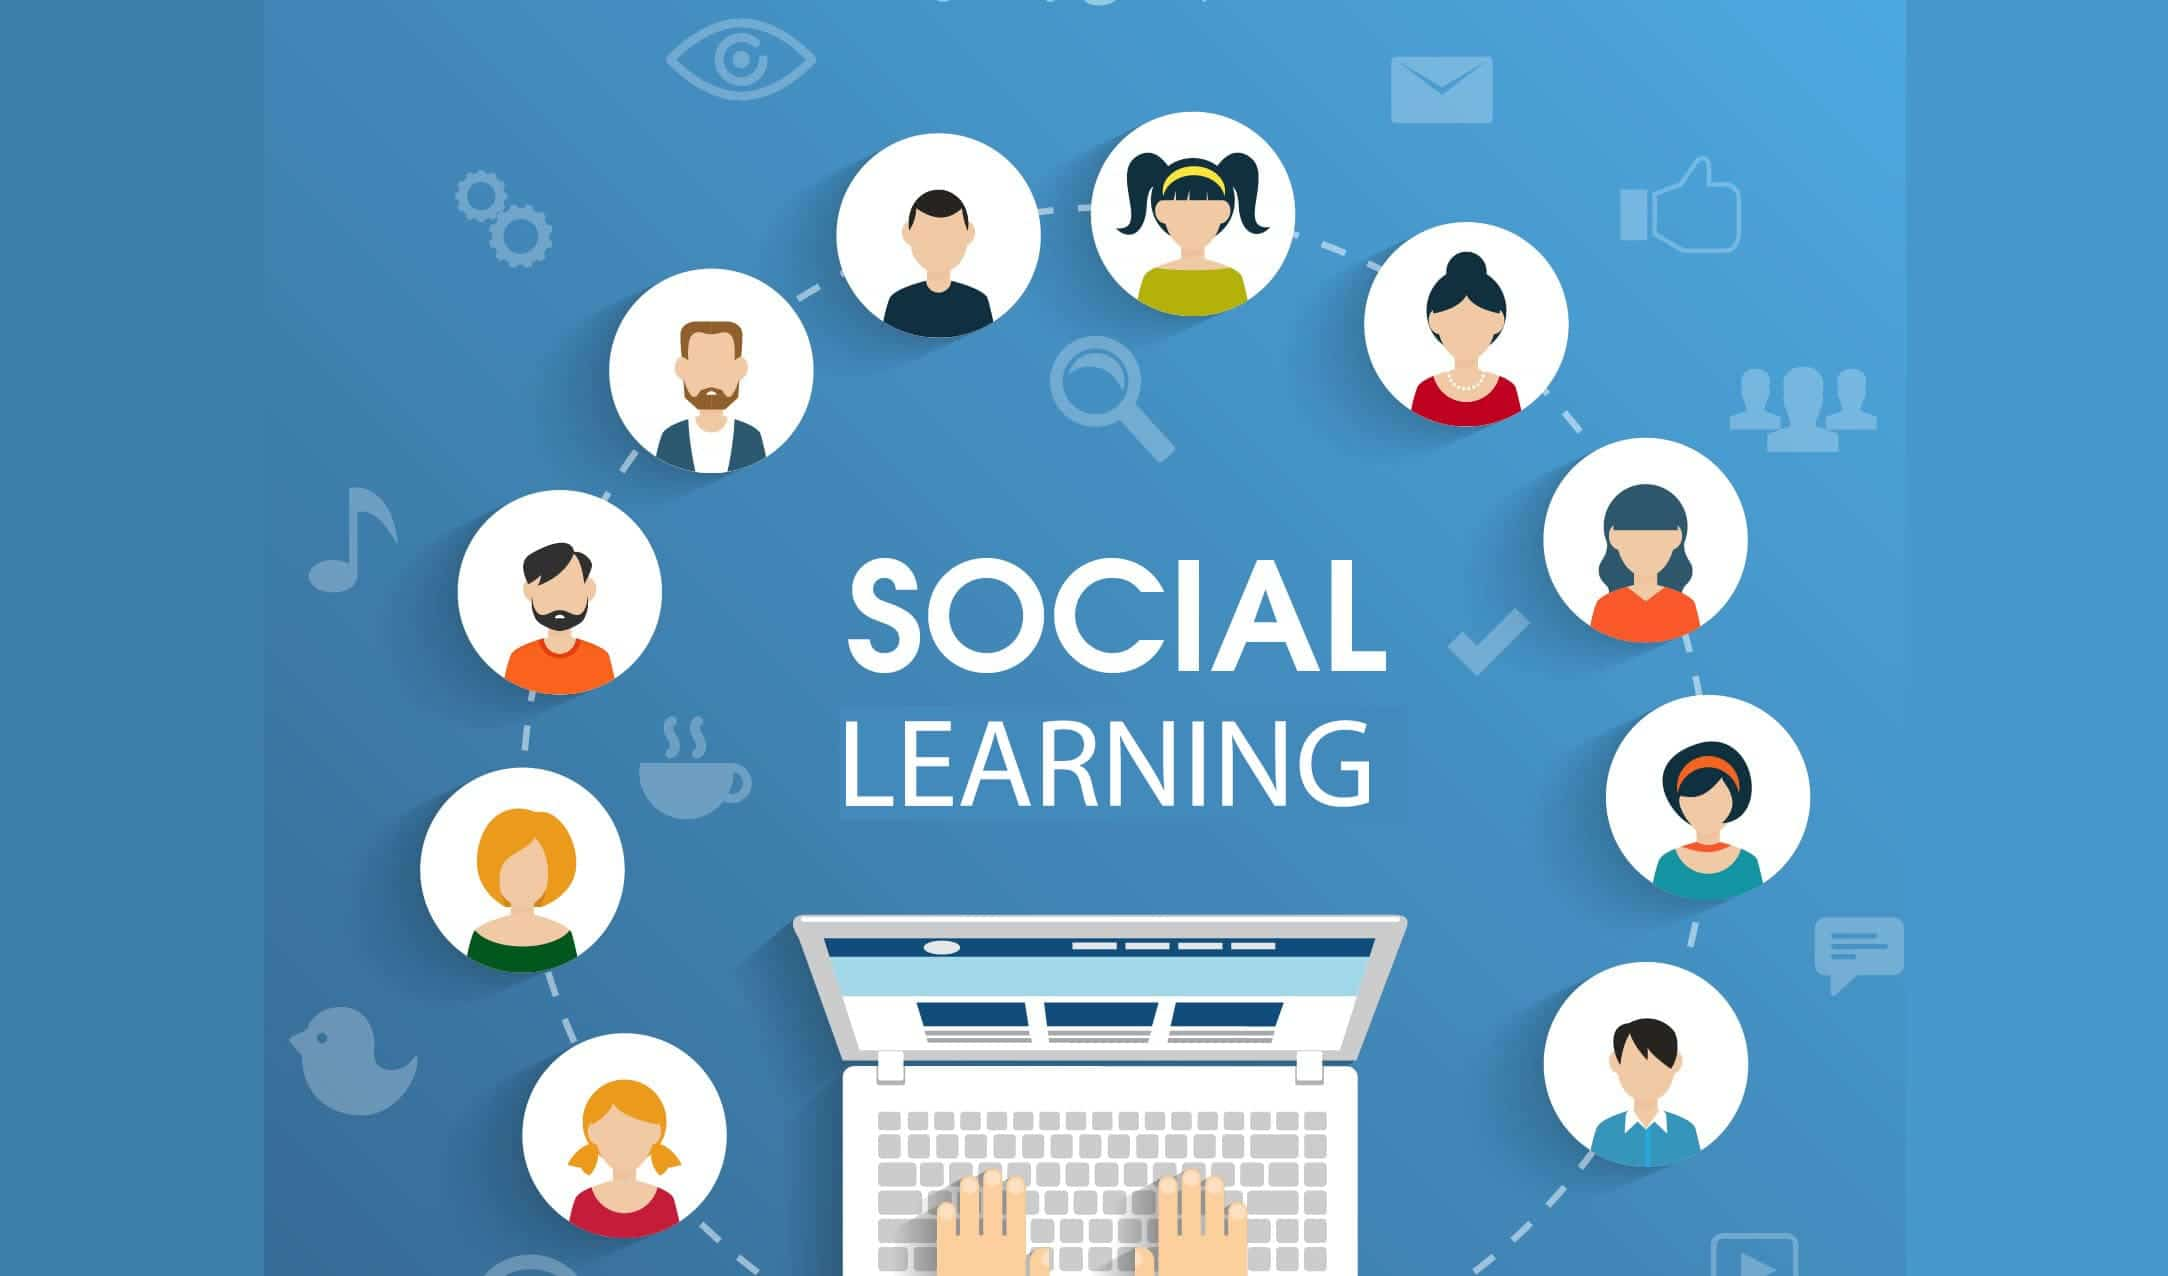 Amazing Social Learning Tools to Explore